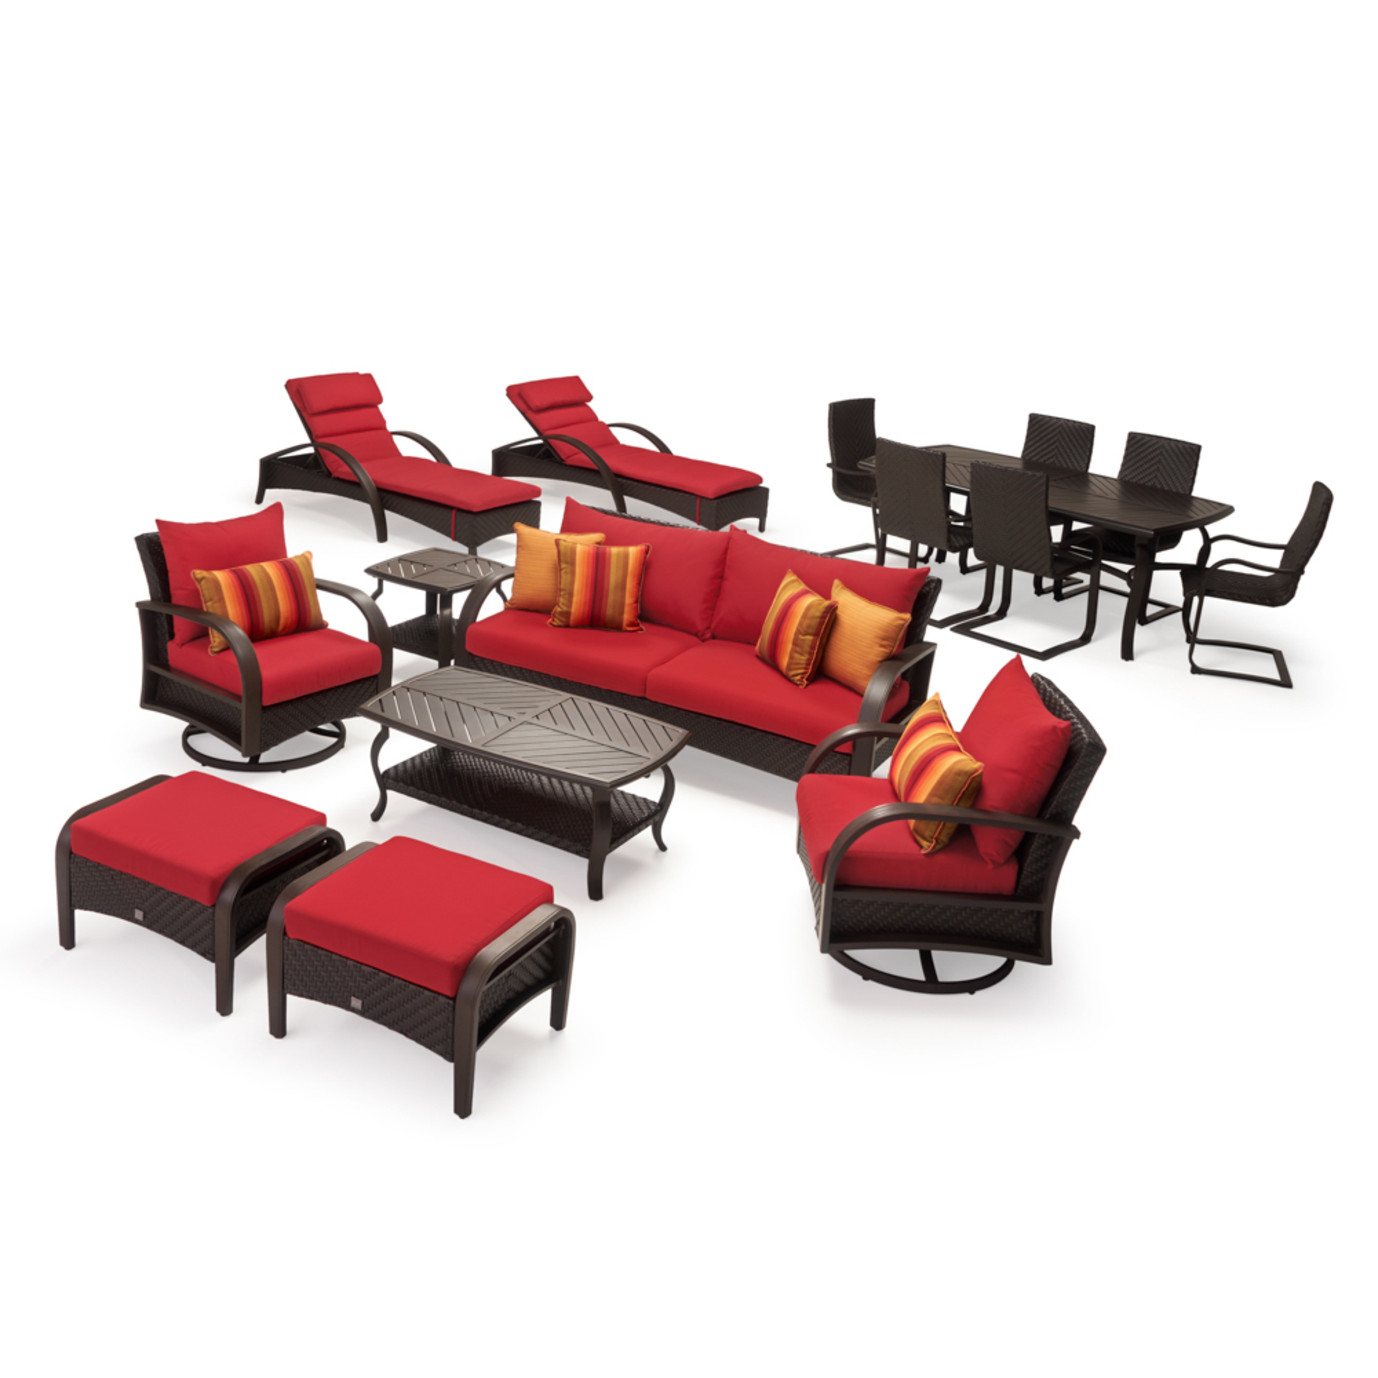 Barcelo™ 16 Piece Estate Collection - Sunset Red